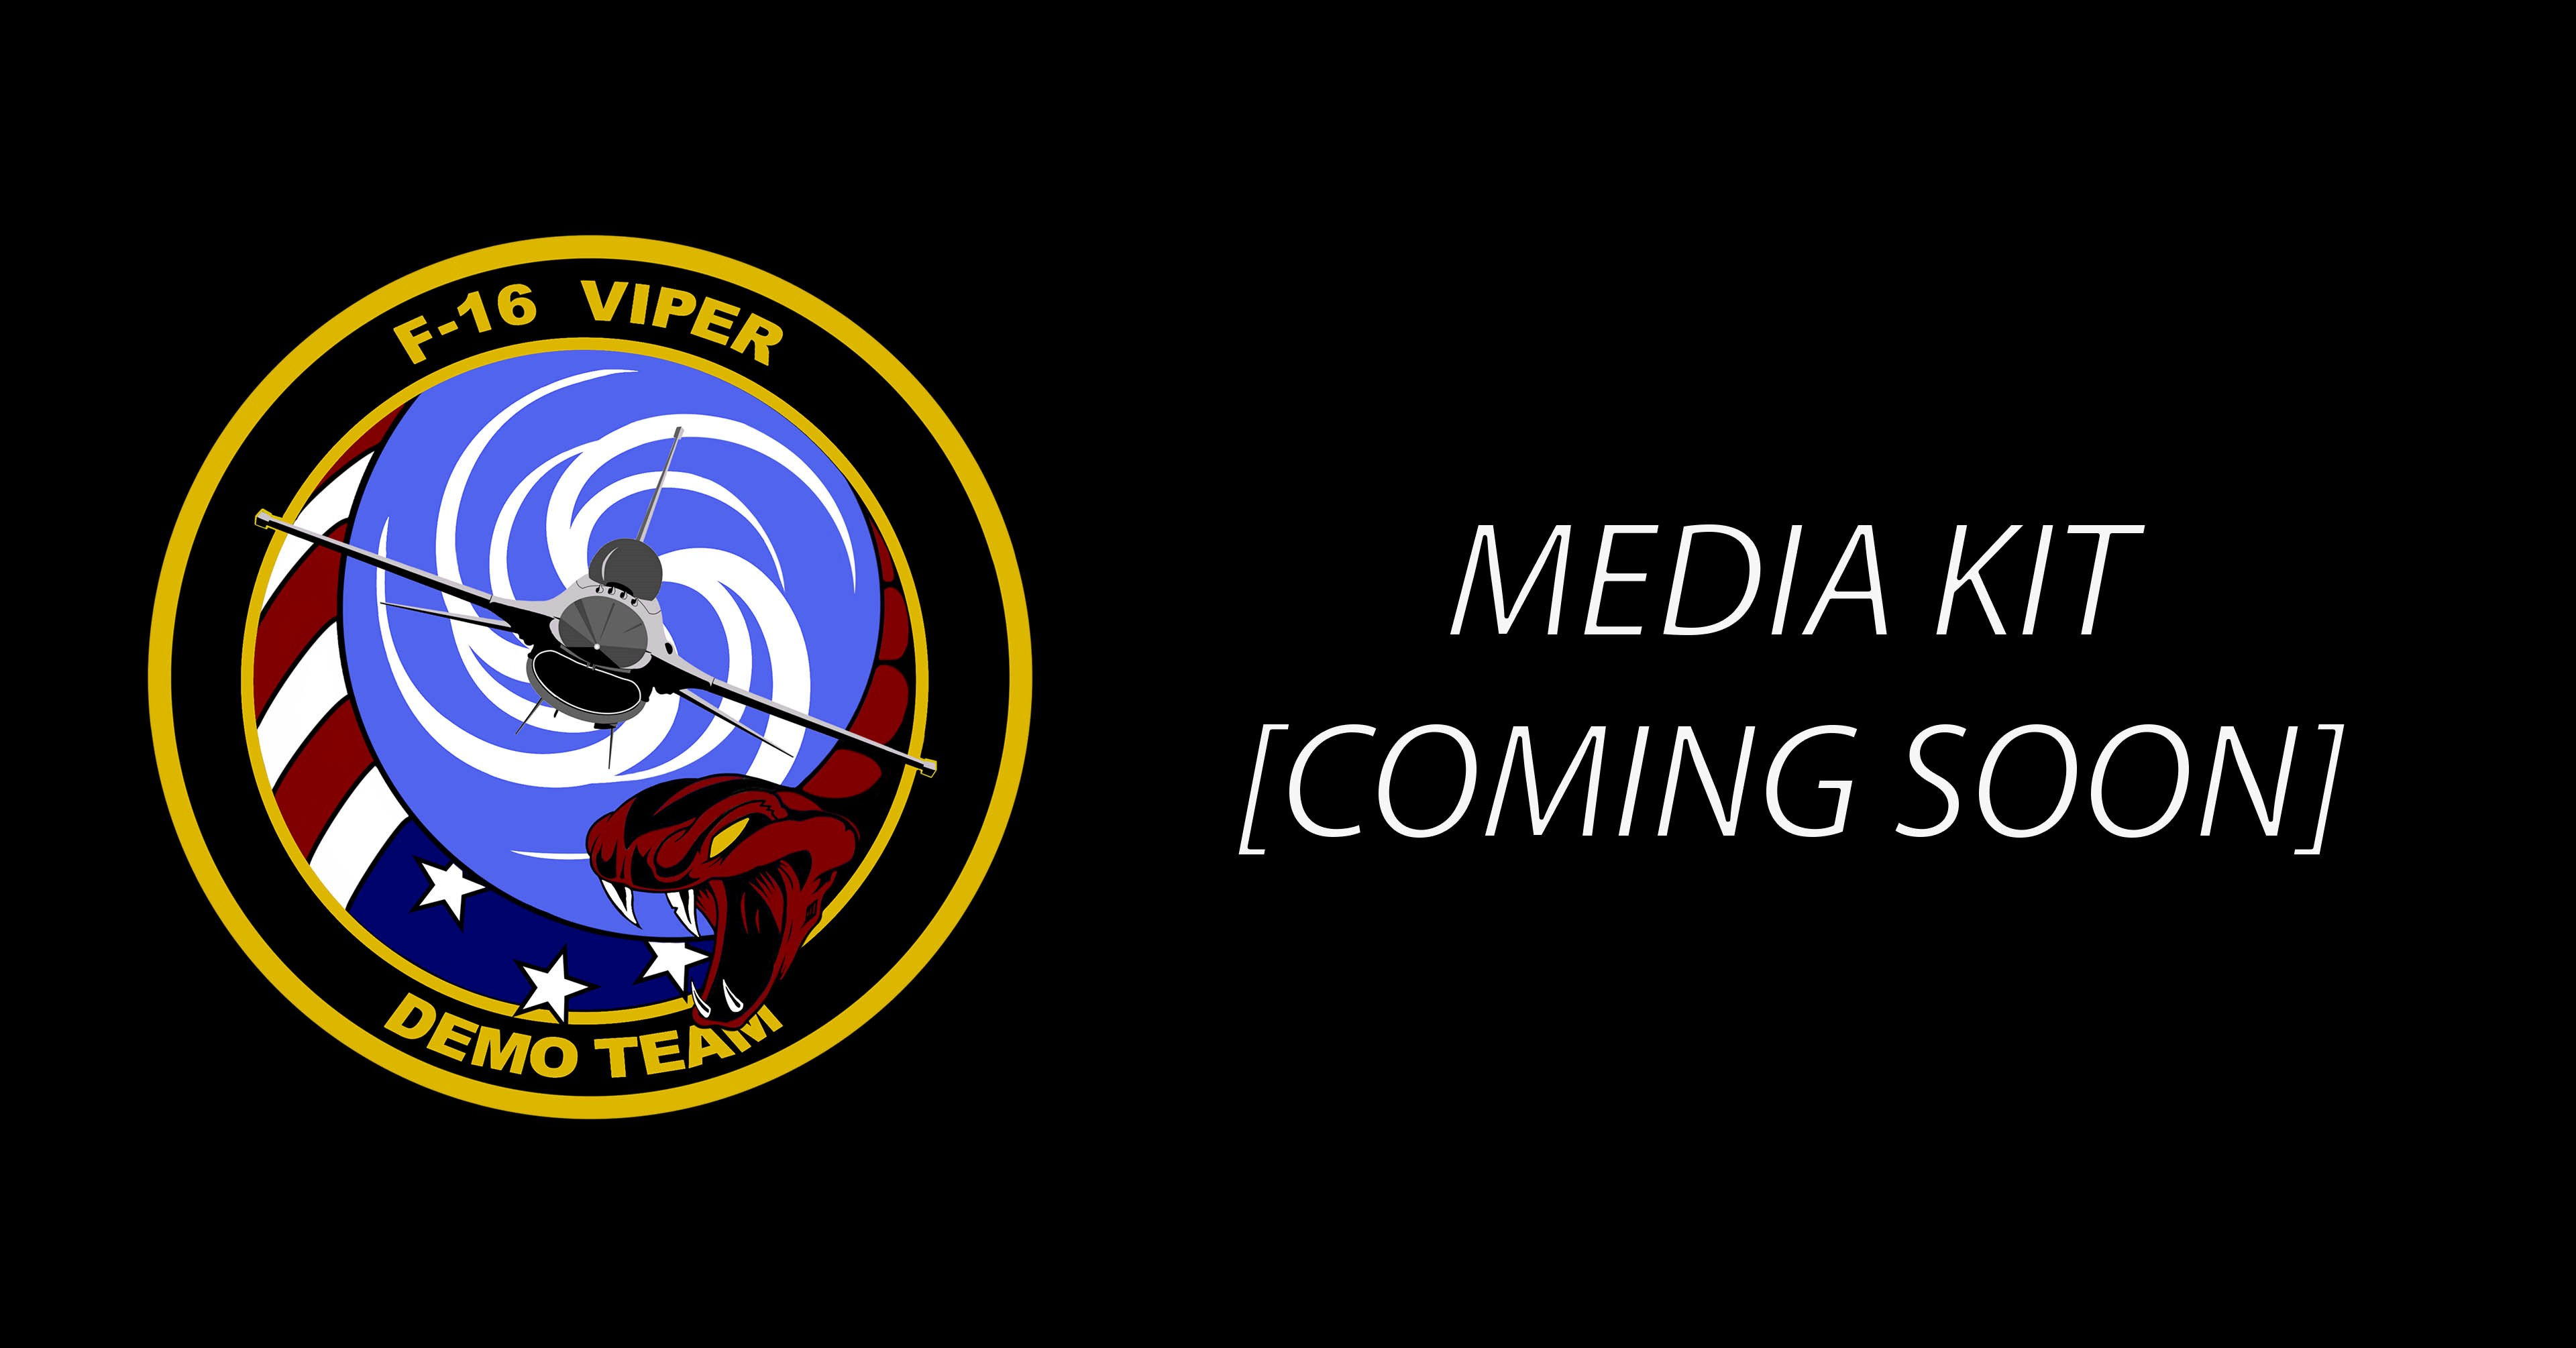 image of viper demo team patch, link to media kit.